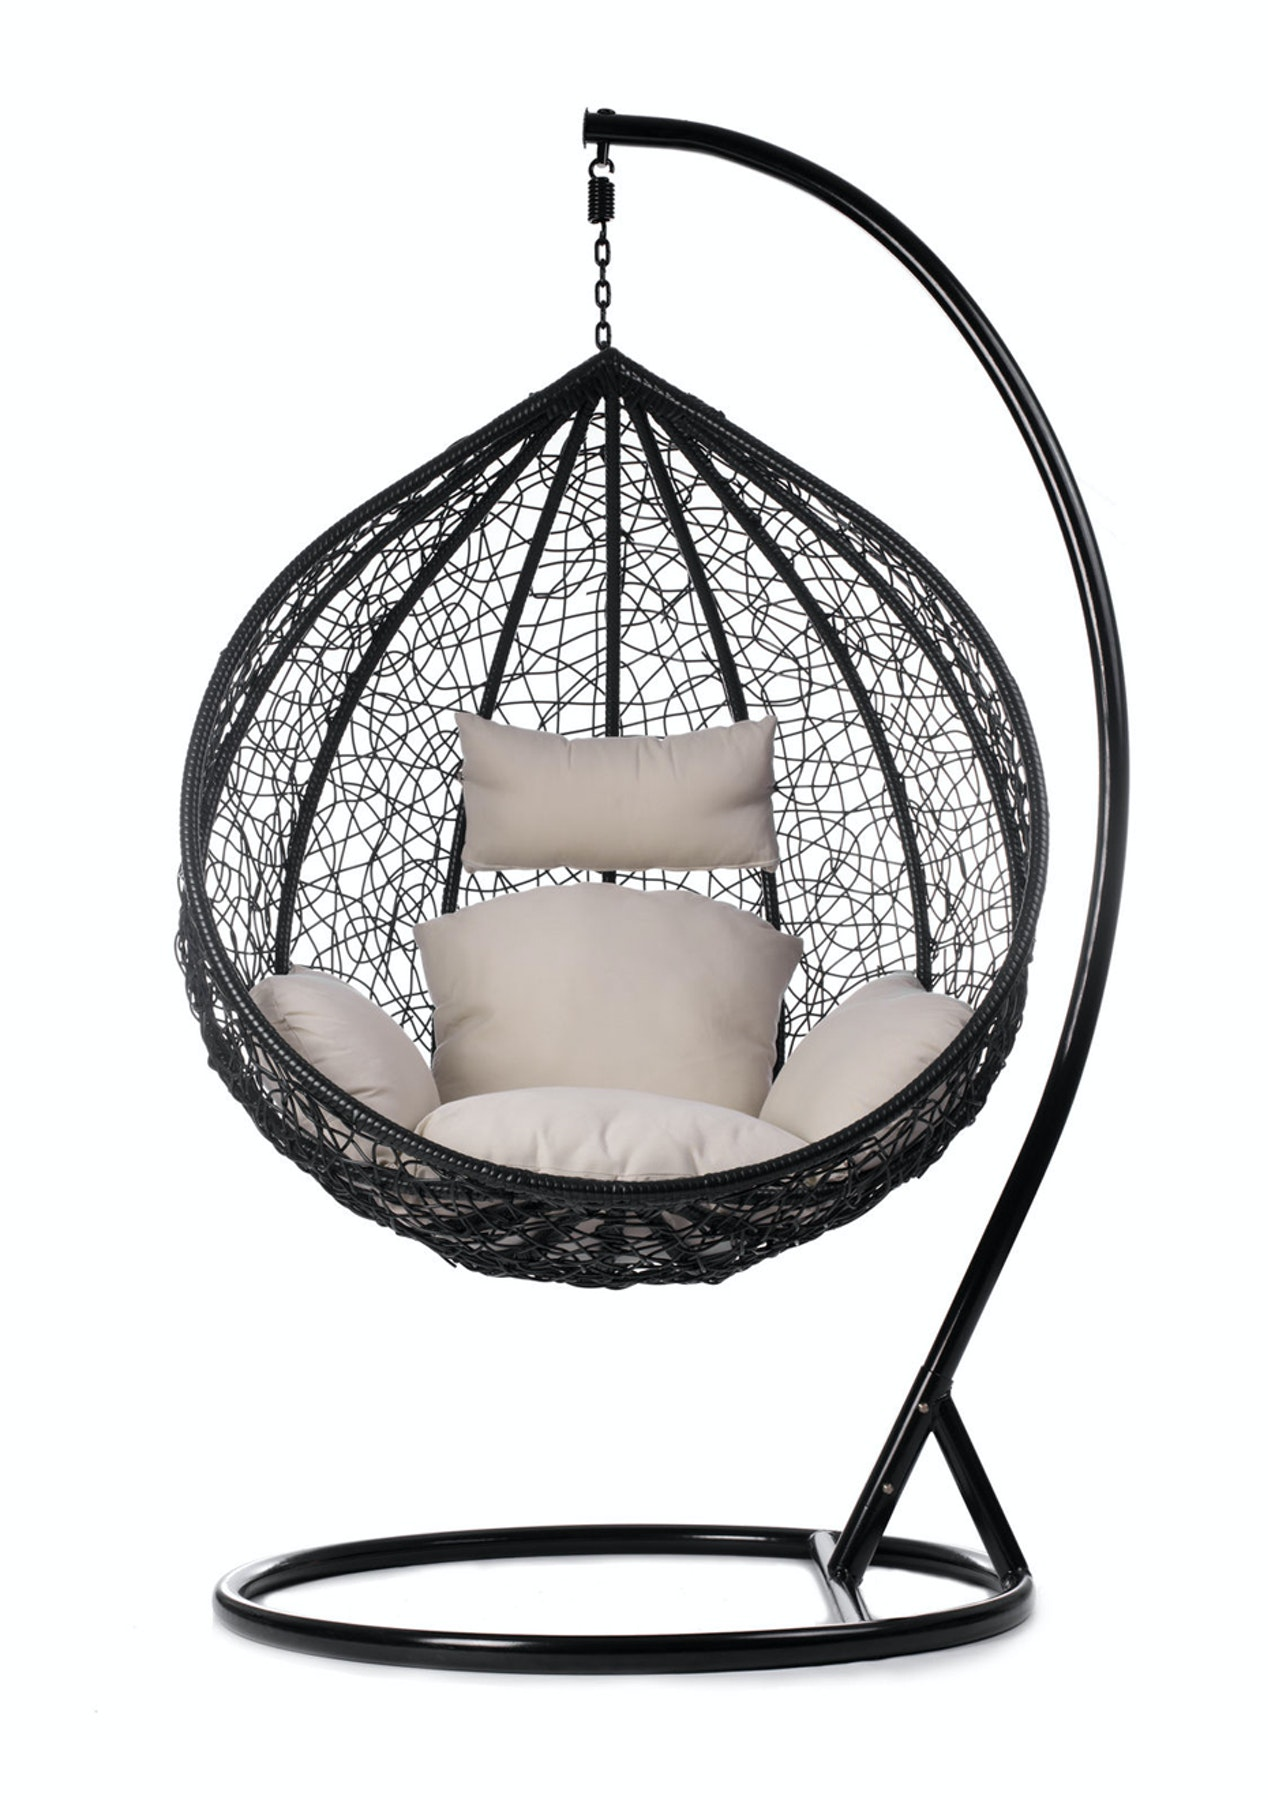 Remarkable Hanging Egg Chair X Large Caraccident5 Cool Chair Designs And Ideas Caraccident5Info